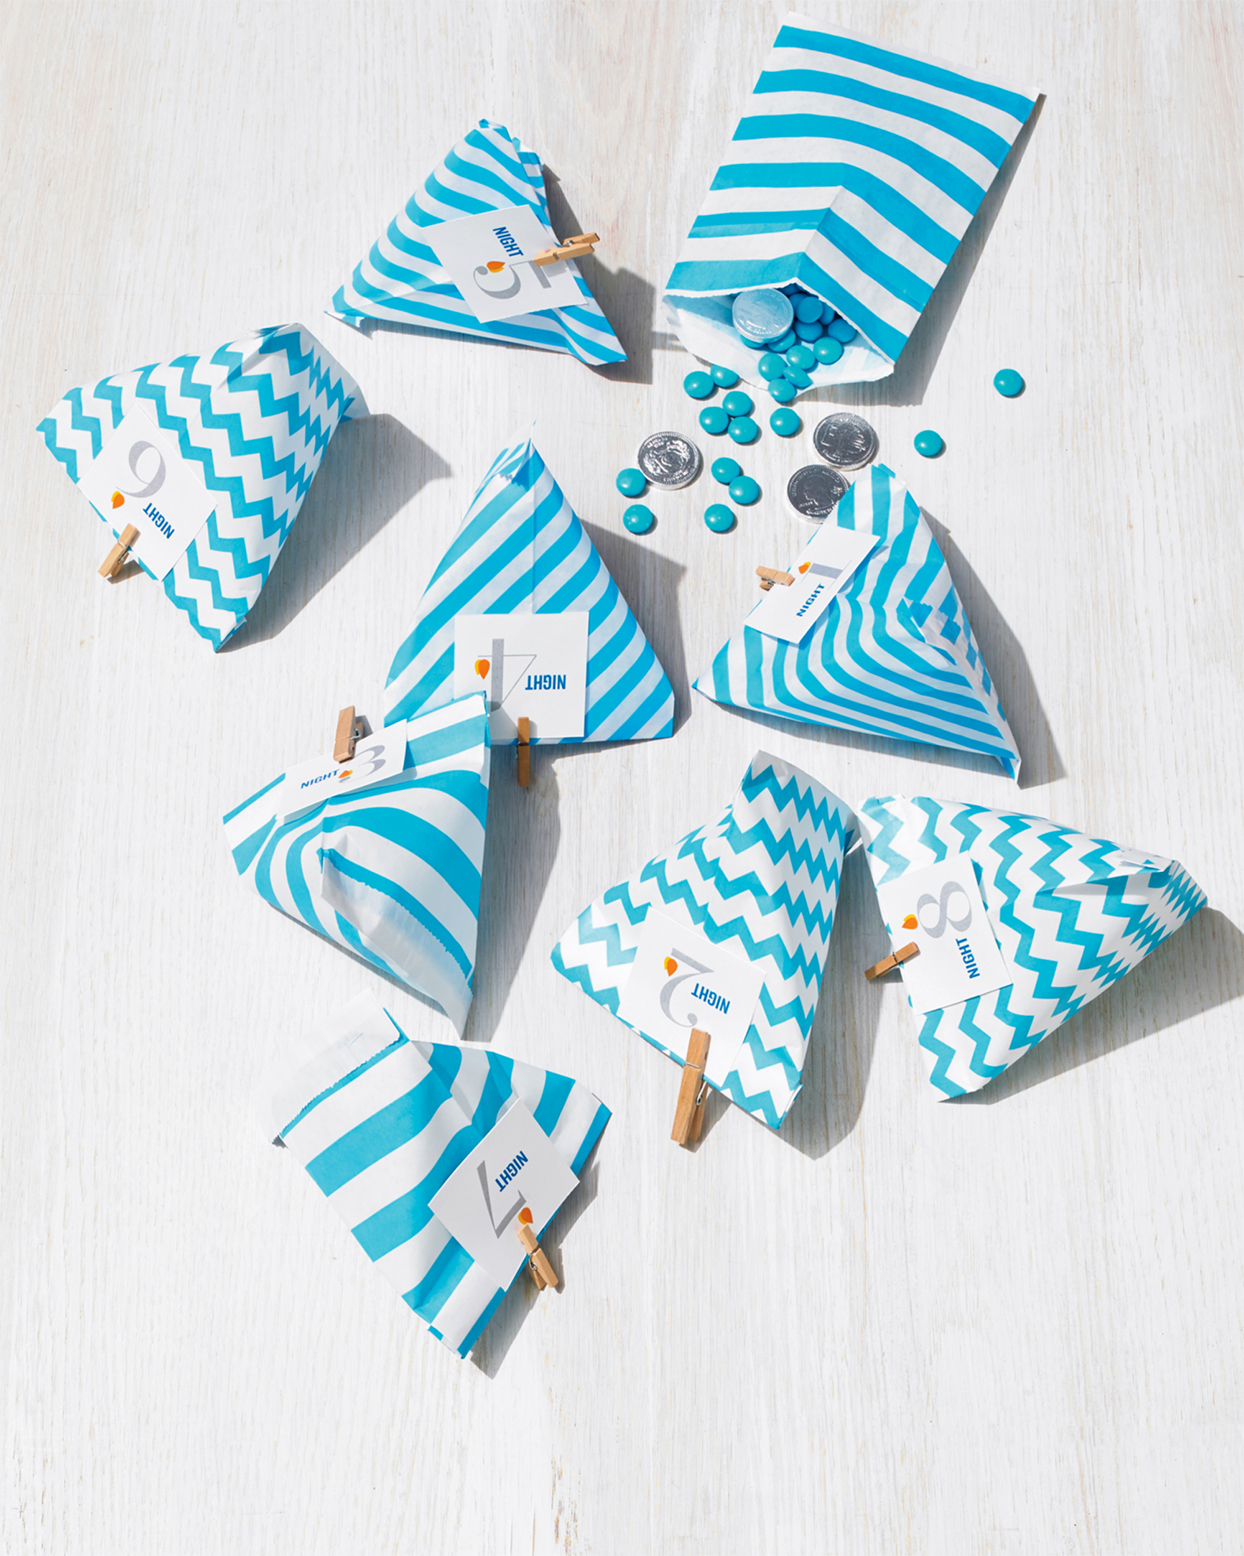 blue and white striped gift bags with clip art tags